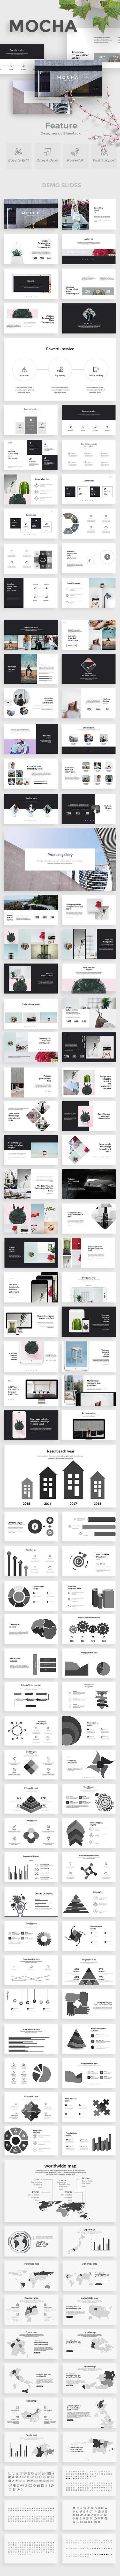 Mocha Creative Powerpoint Template - Creative PowerPoint Templates